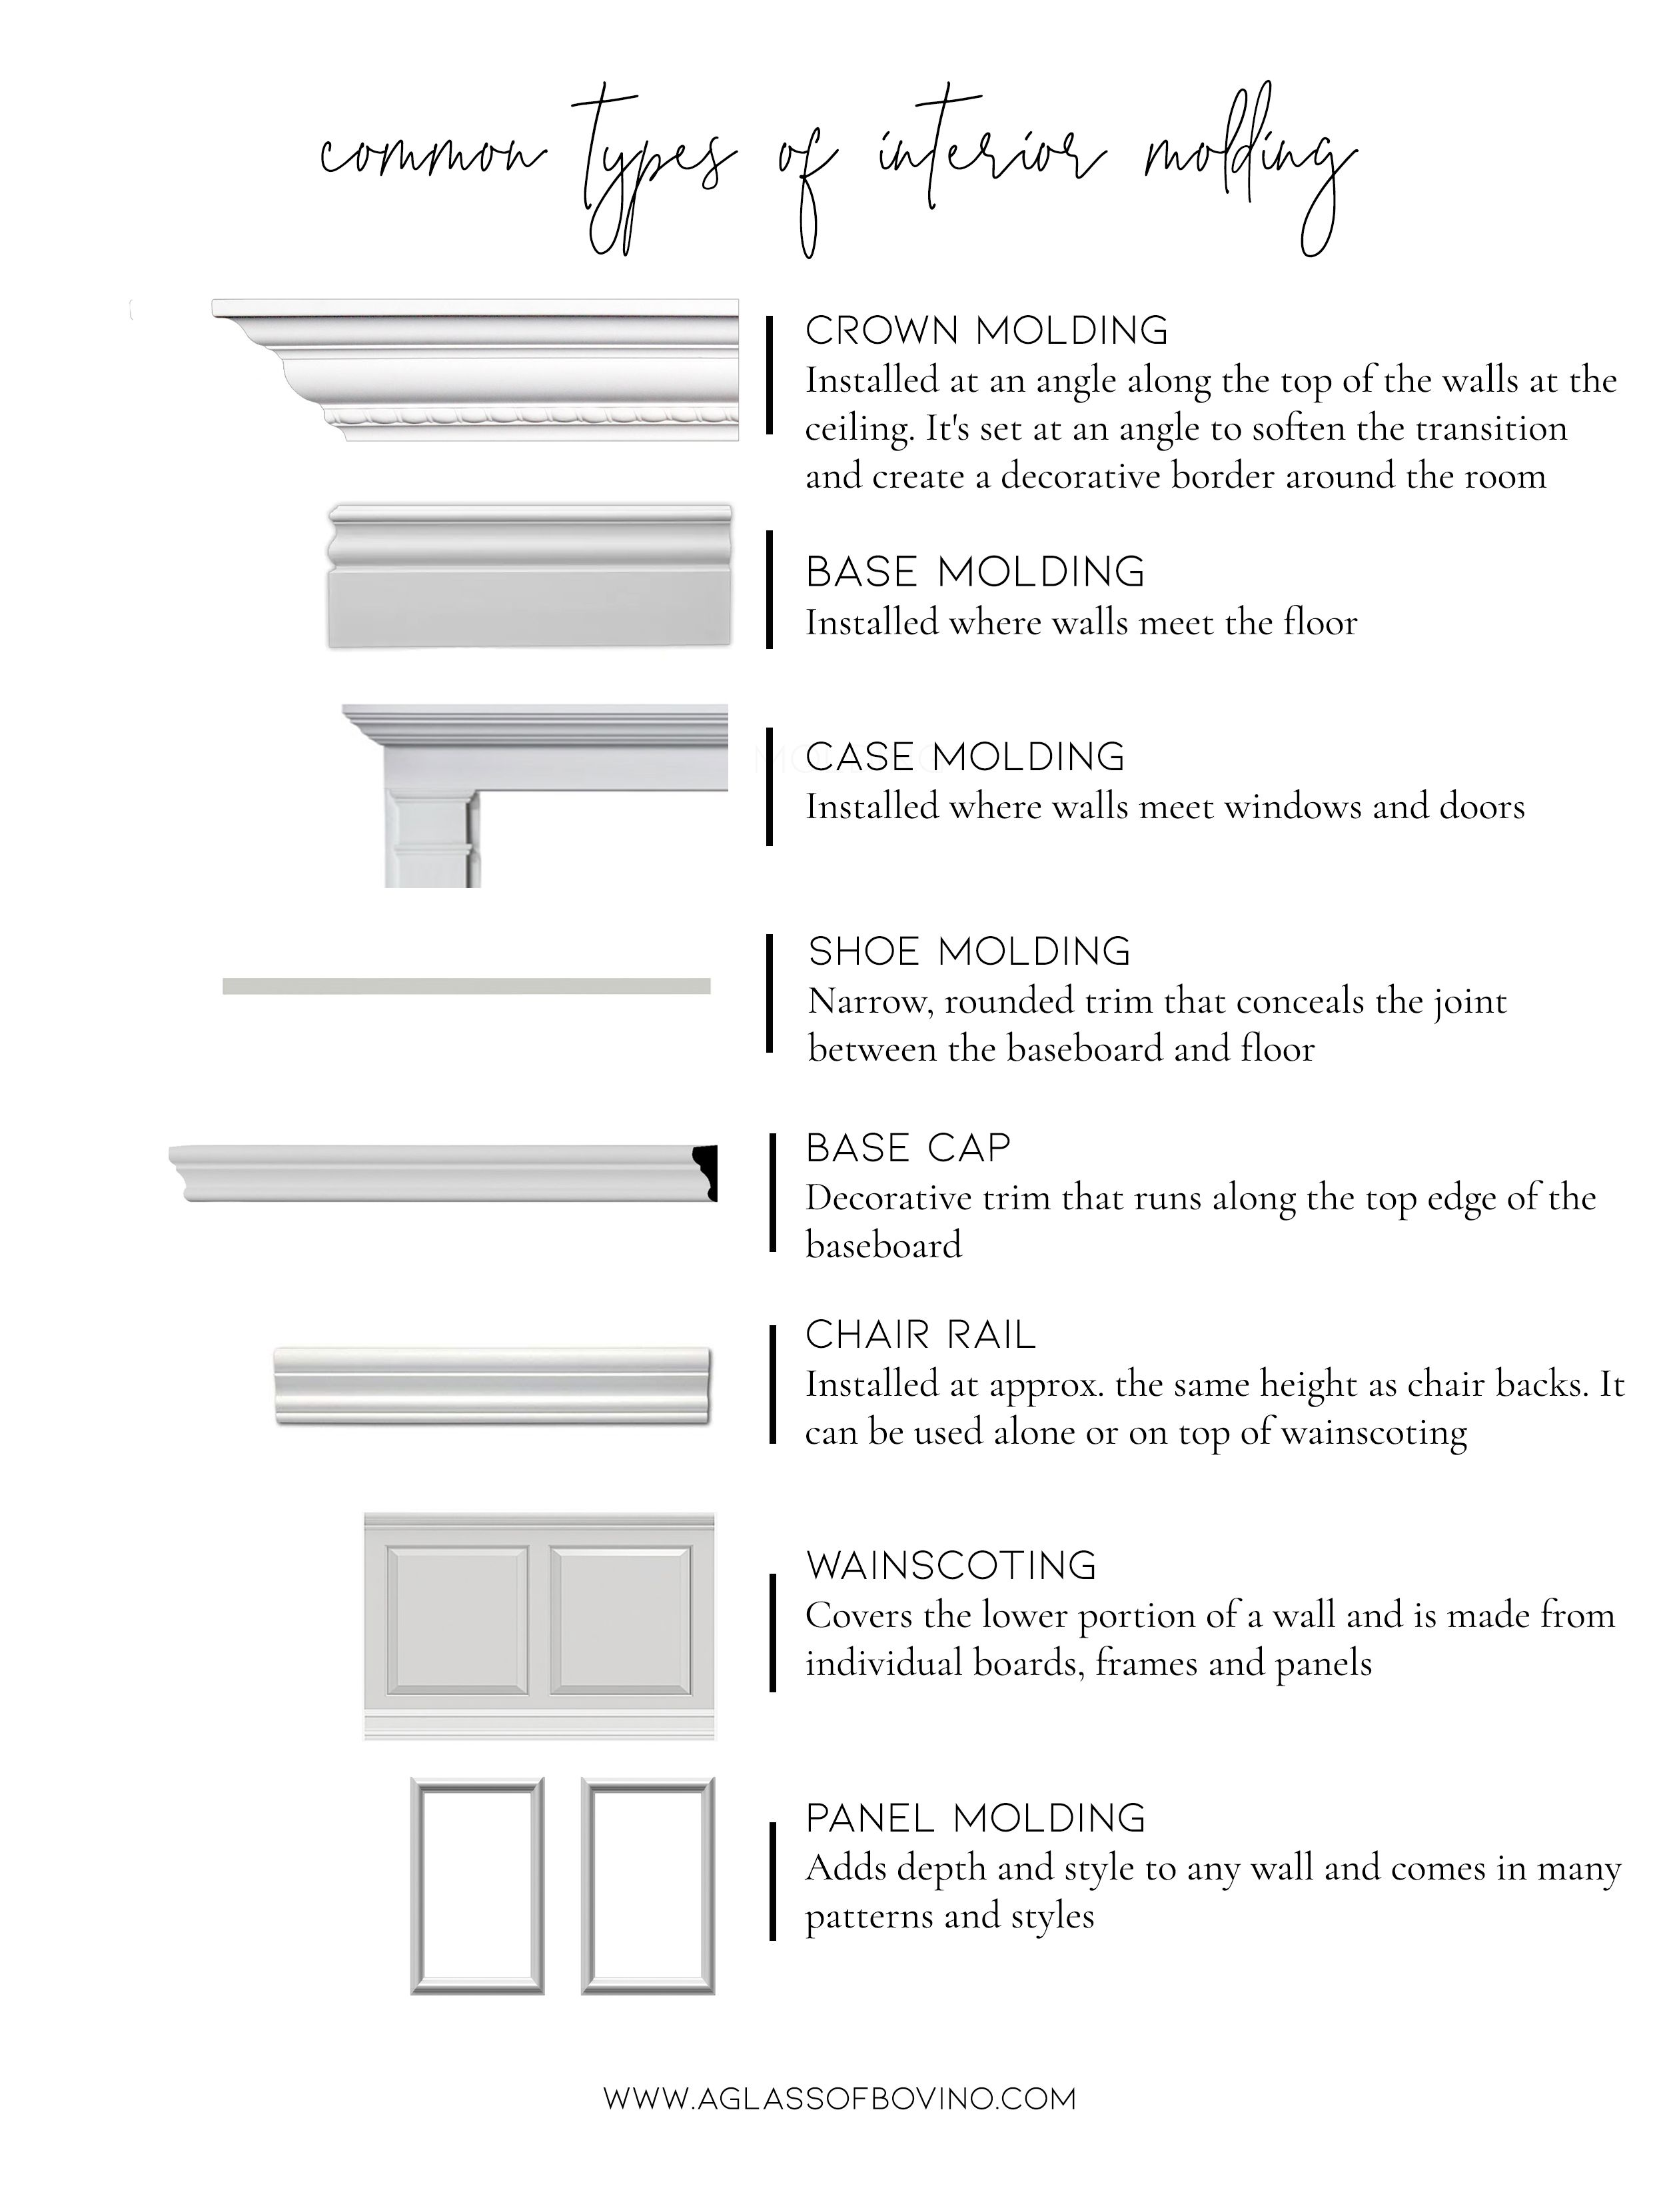 MOLDINGS: A Guaranteed Way to Create a Drop-Dead-Gorgeous Room